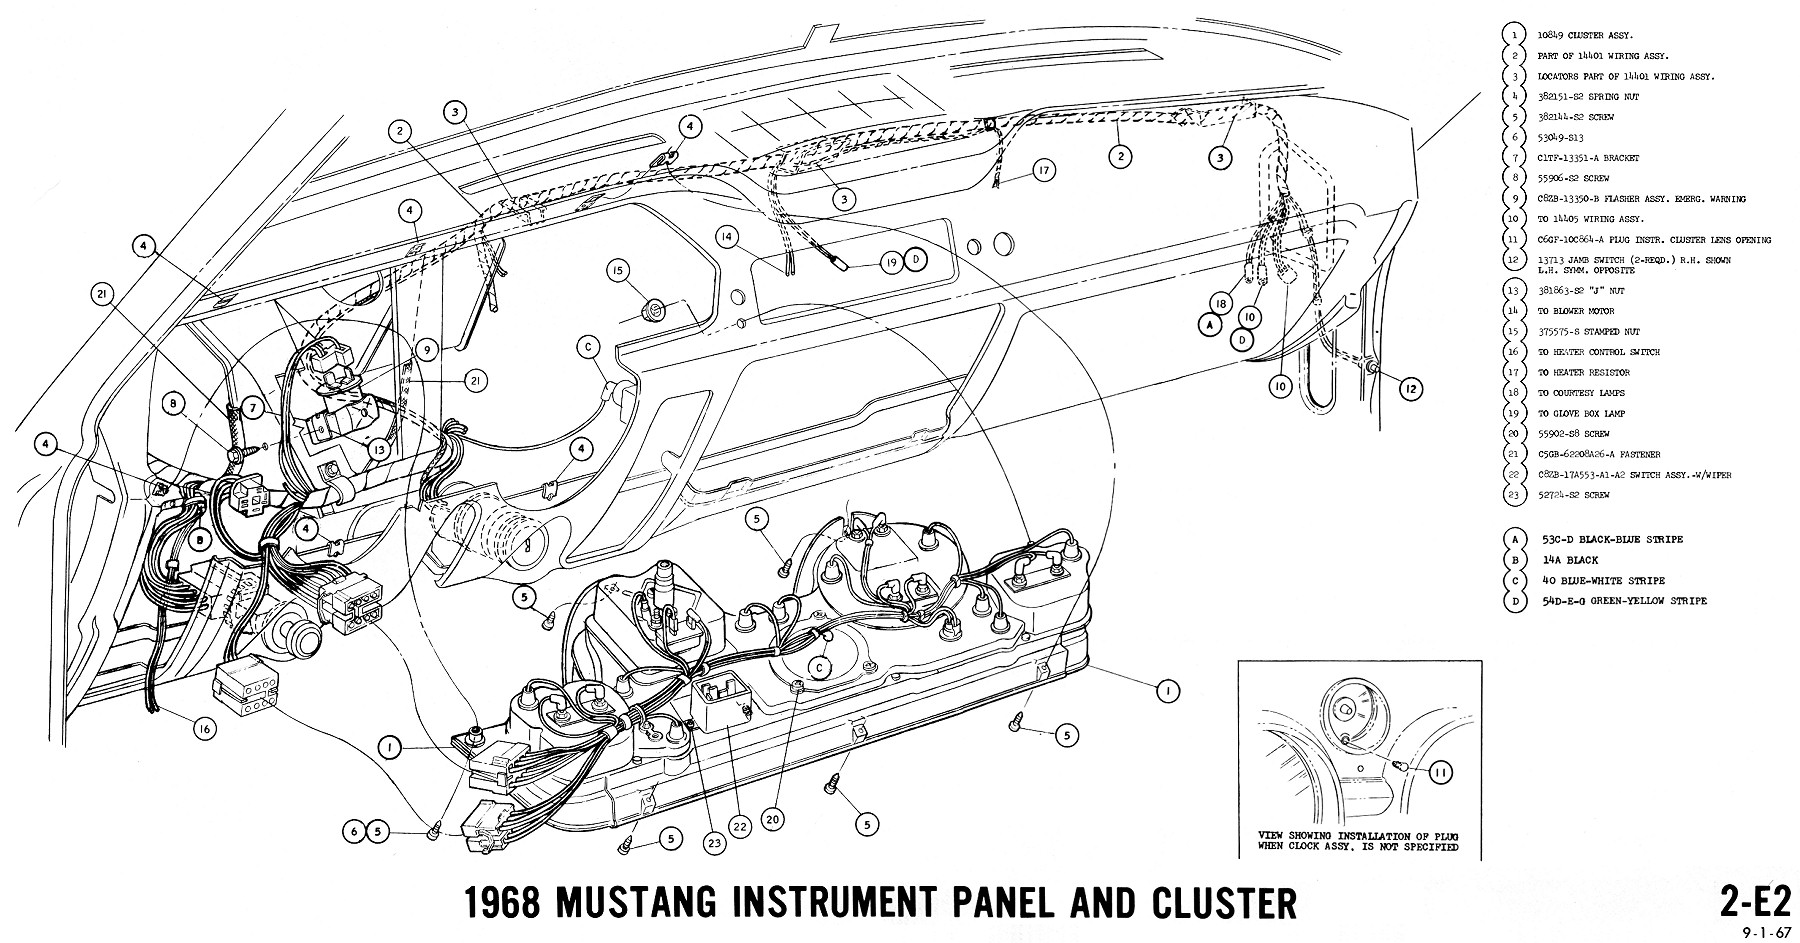 hight resolution of 1968 mustang dash cluster wiring diagram electrical diagrams 1989 mustang wiring diagram 1968 mustang instrument panel